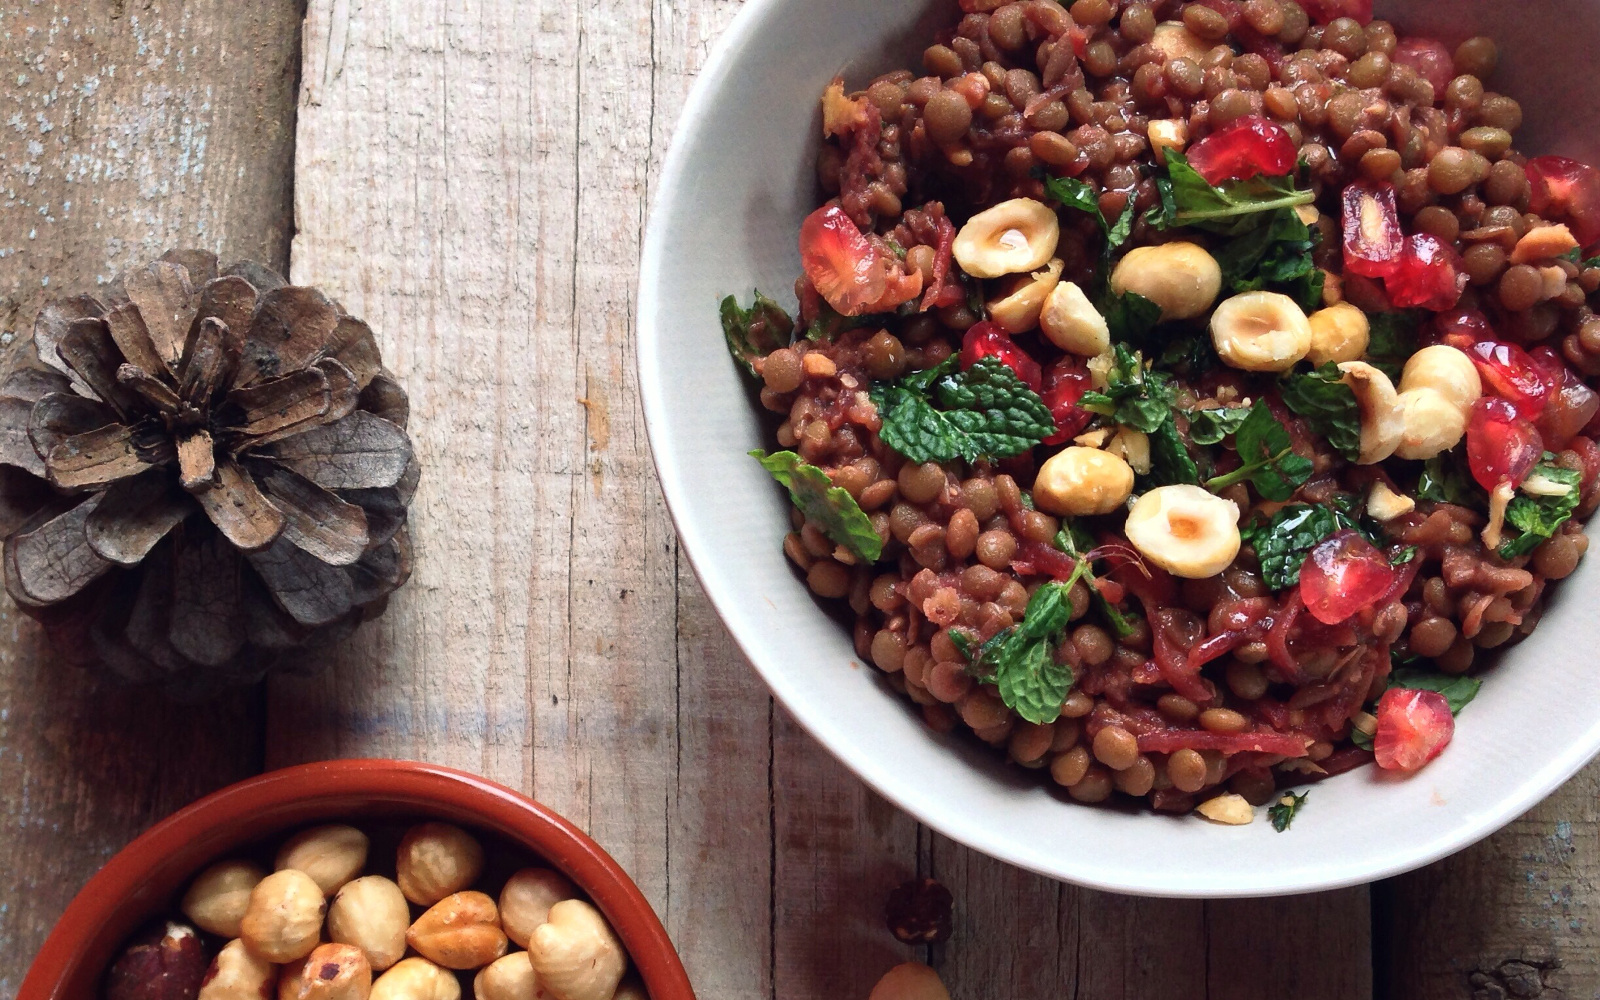 Warm Lentils With Beets and Hazelnuts